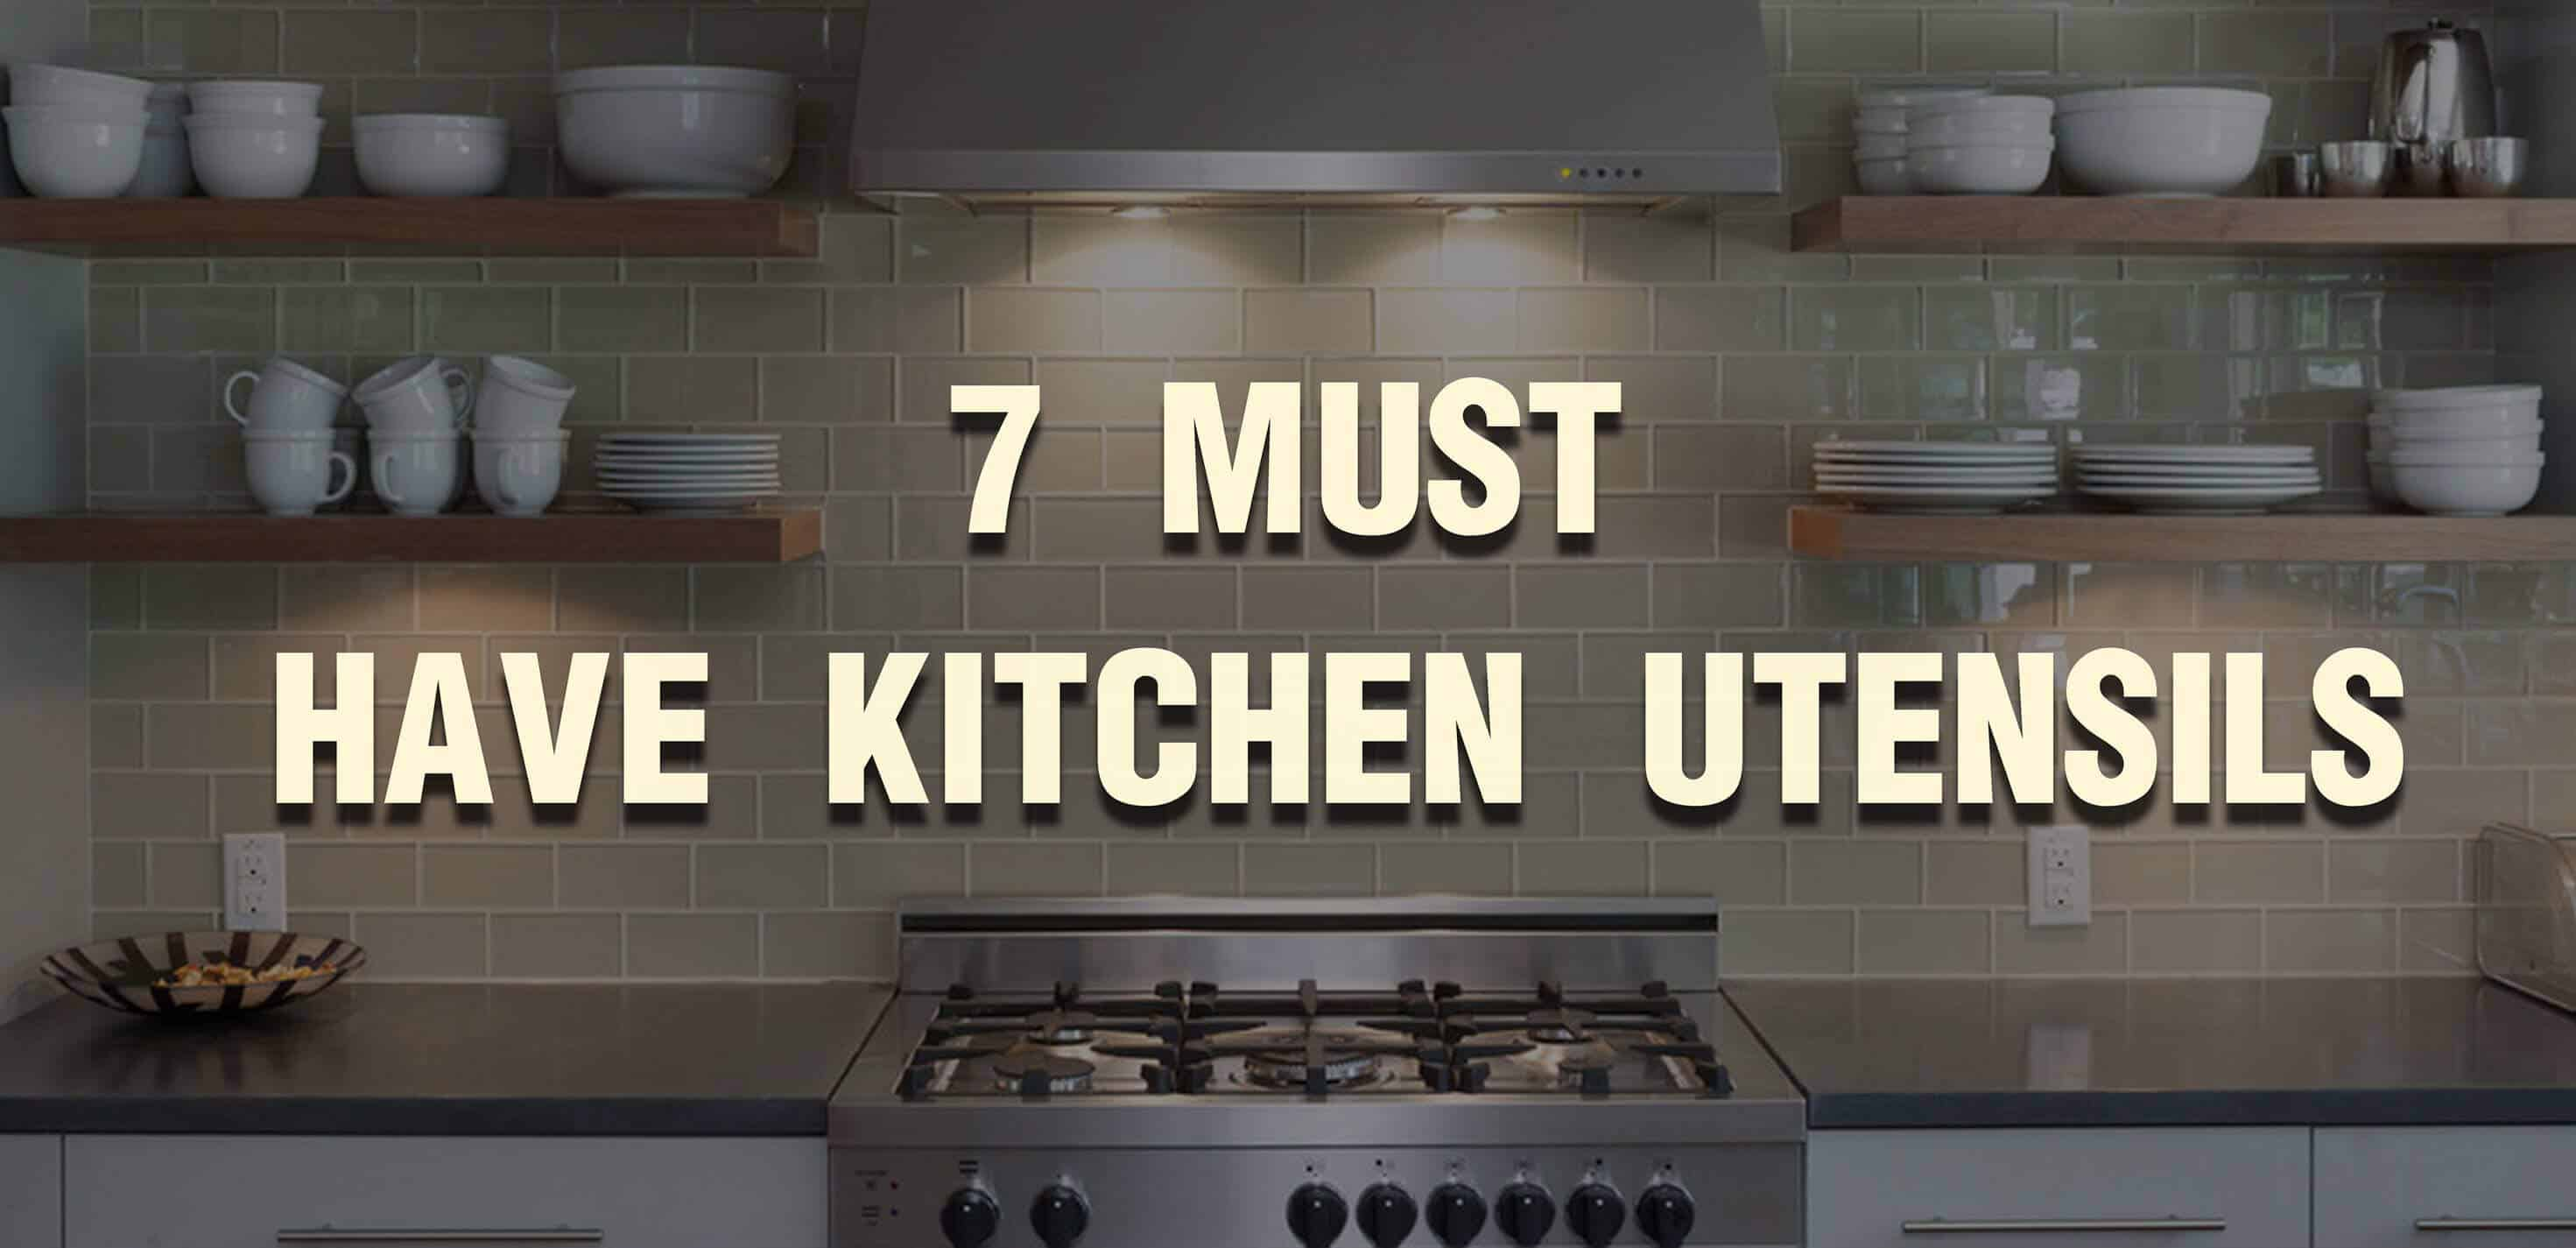 An insight to 7 must have kitchen utensils (2)